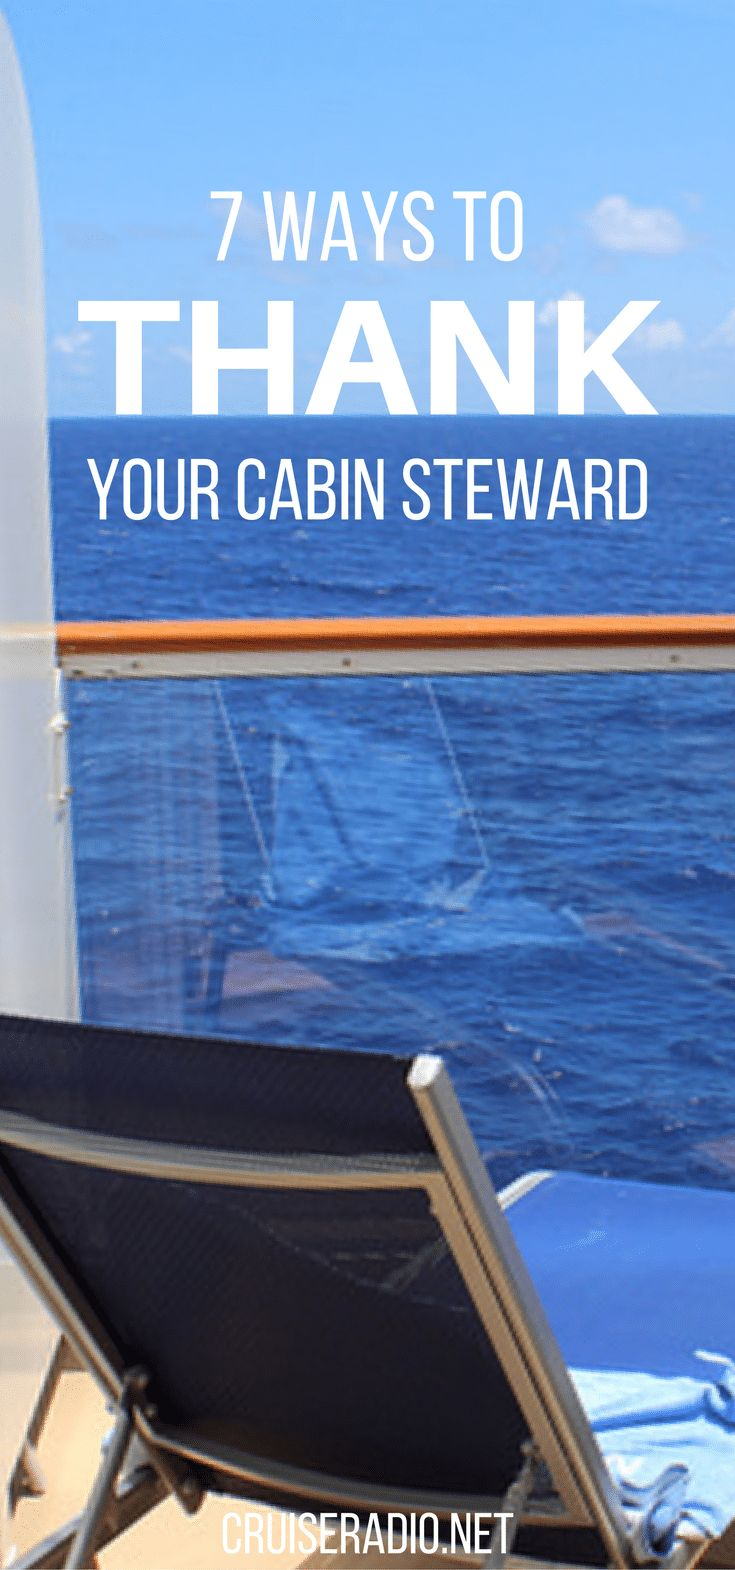 7 Ways to Thank Your Cabin Steward - Cruise Radio